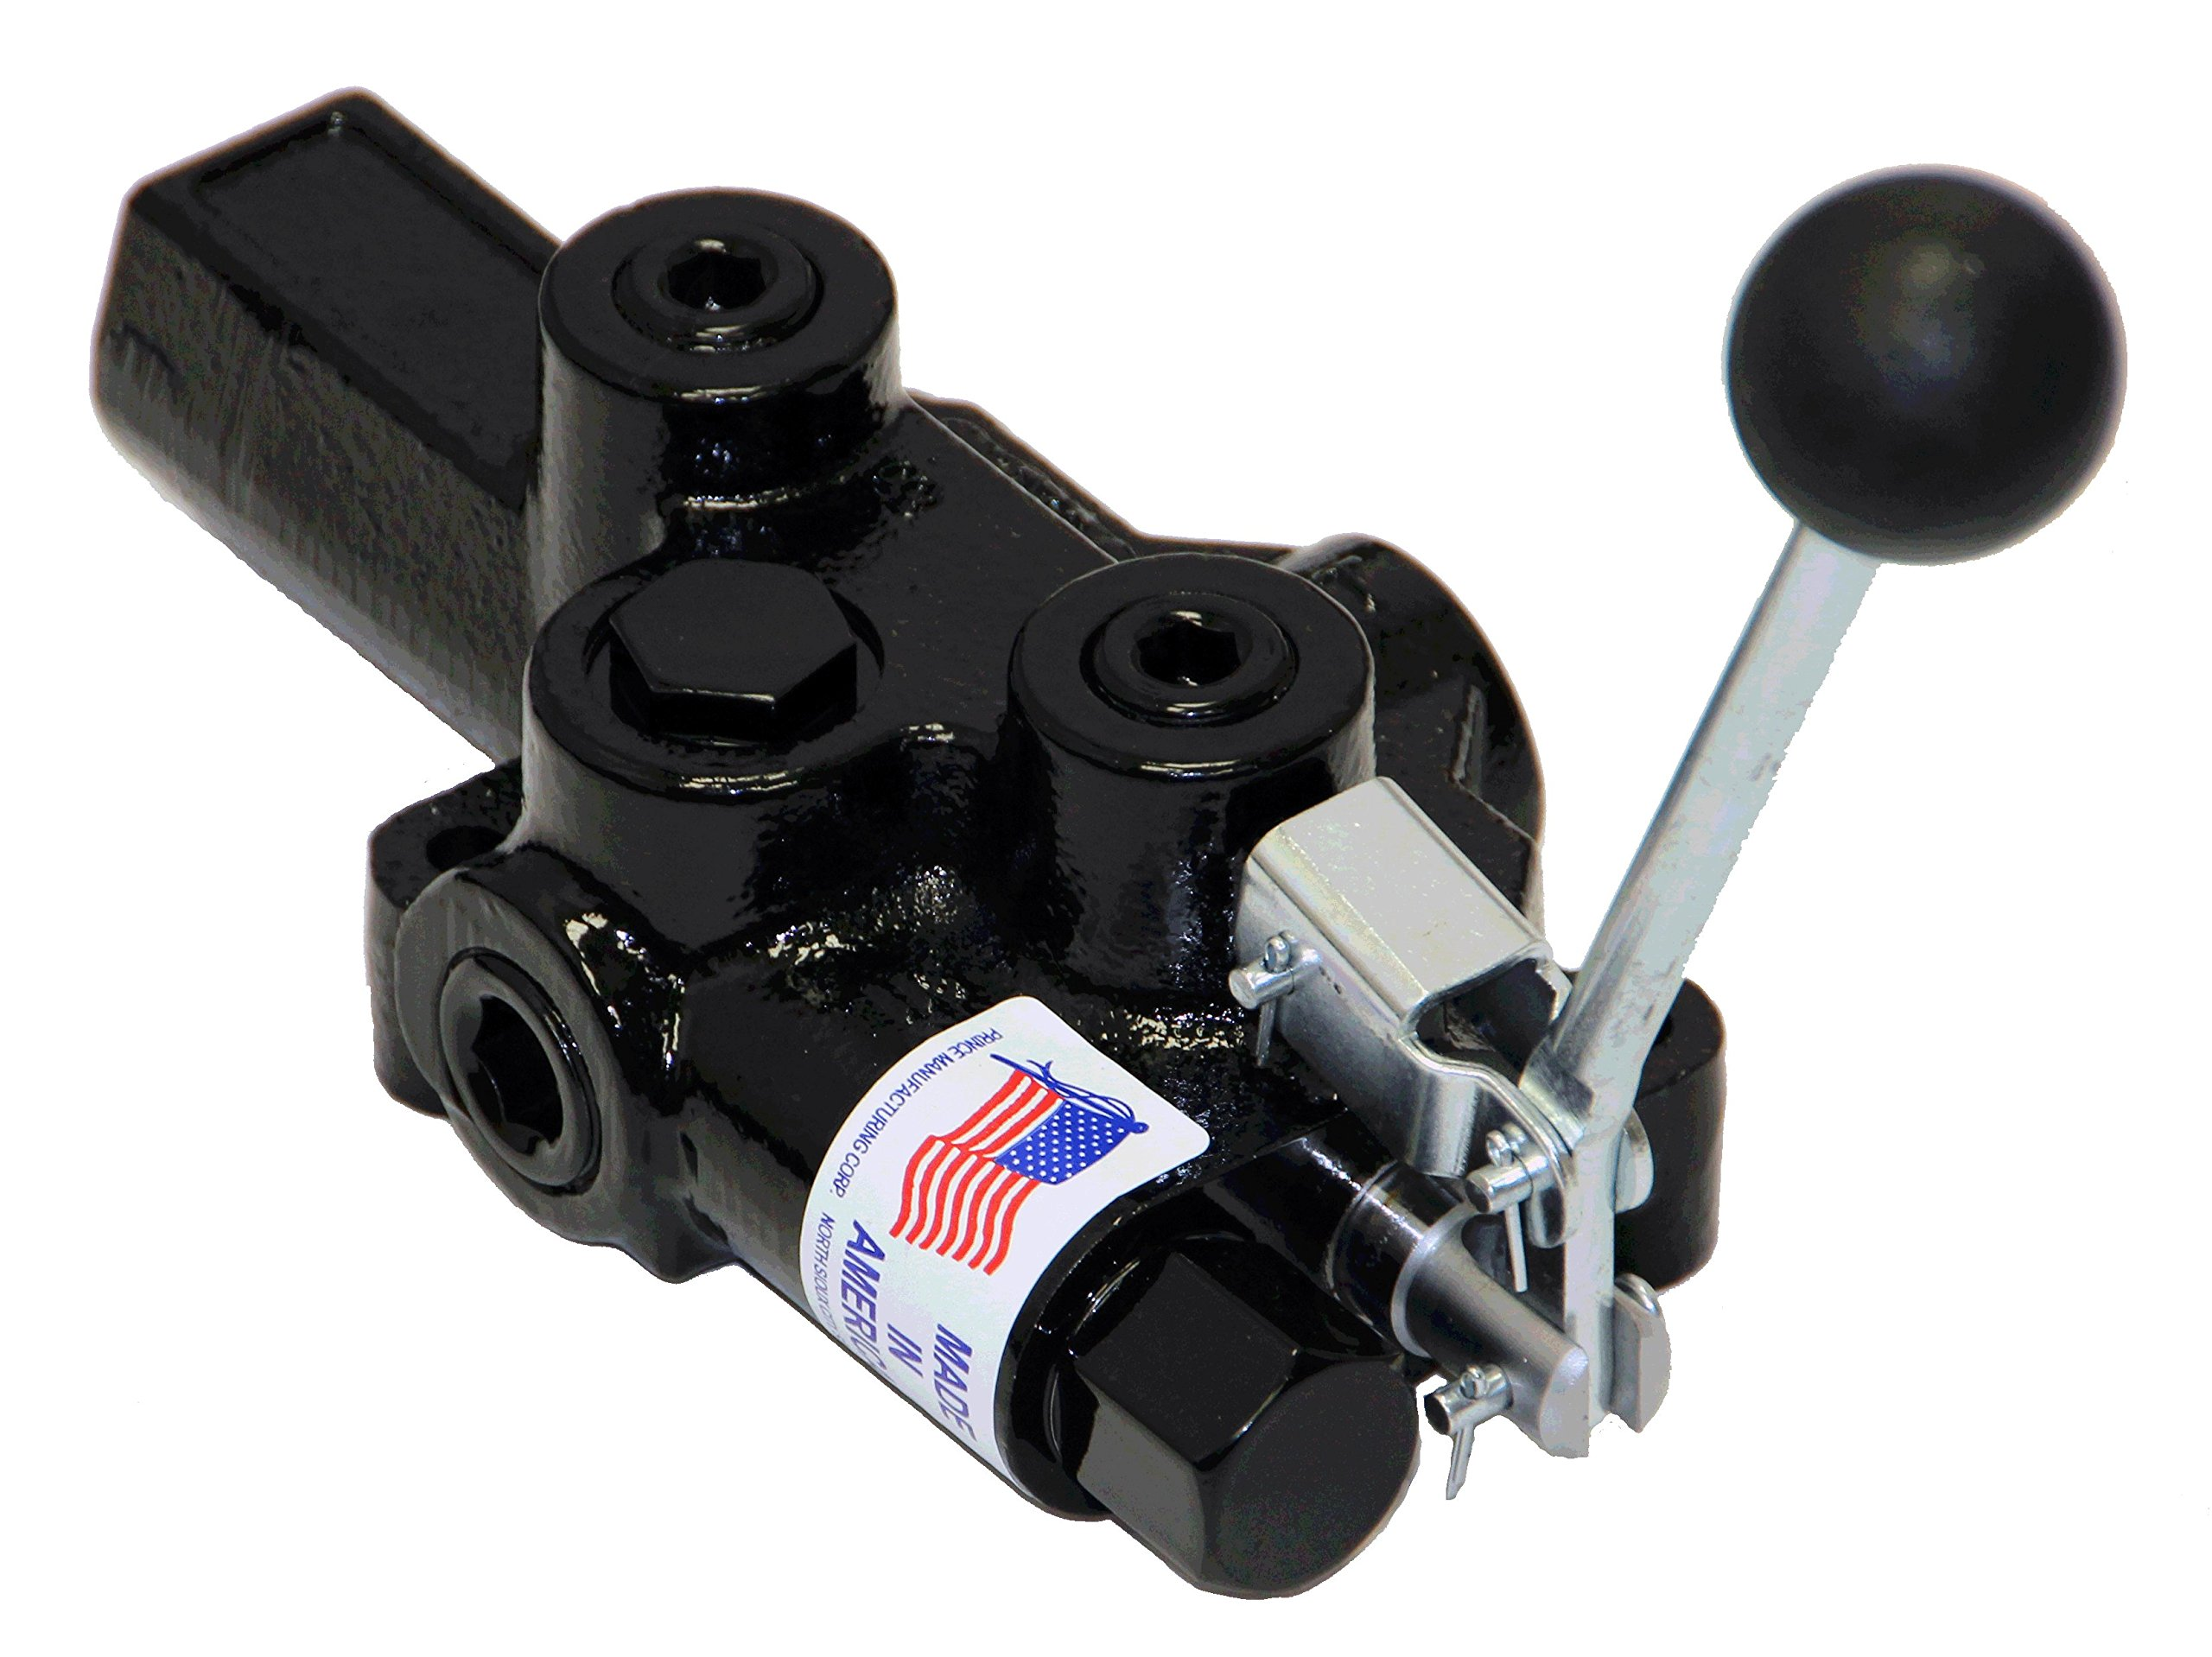 Prince RD-2555-T4-ESA1 Directional Control Valve, Logsplitter, 4 Ways, 3 Positions, Spring Center To Neutral, Cast Iron, 3000 psi, Lever Handle, 20 gpm, In/Out: 1/2'' NPTF, Work: 1/2'' NPTF